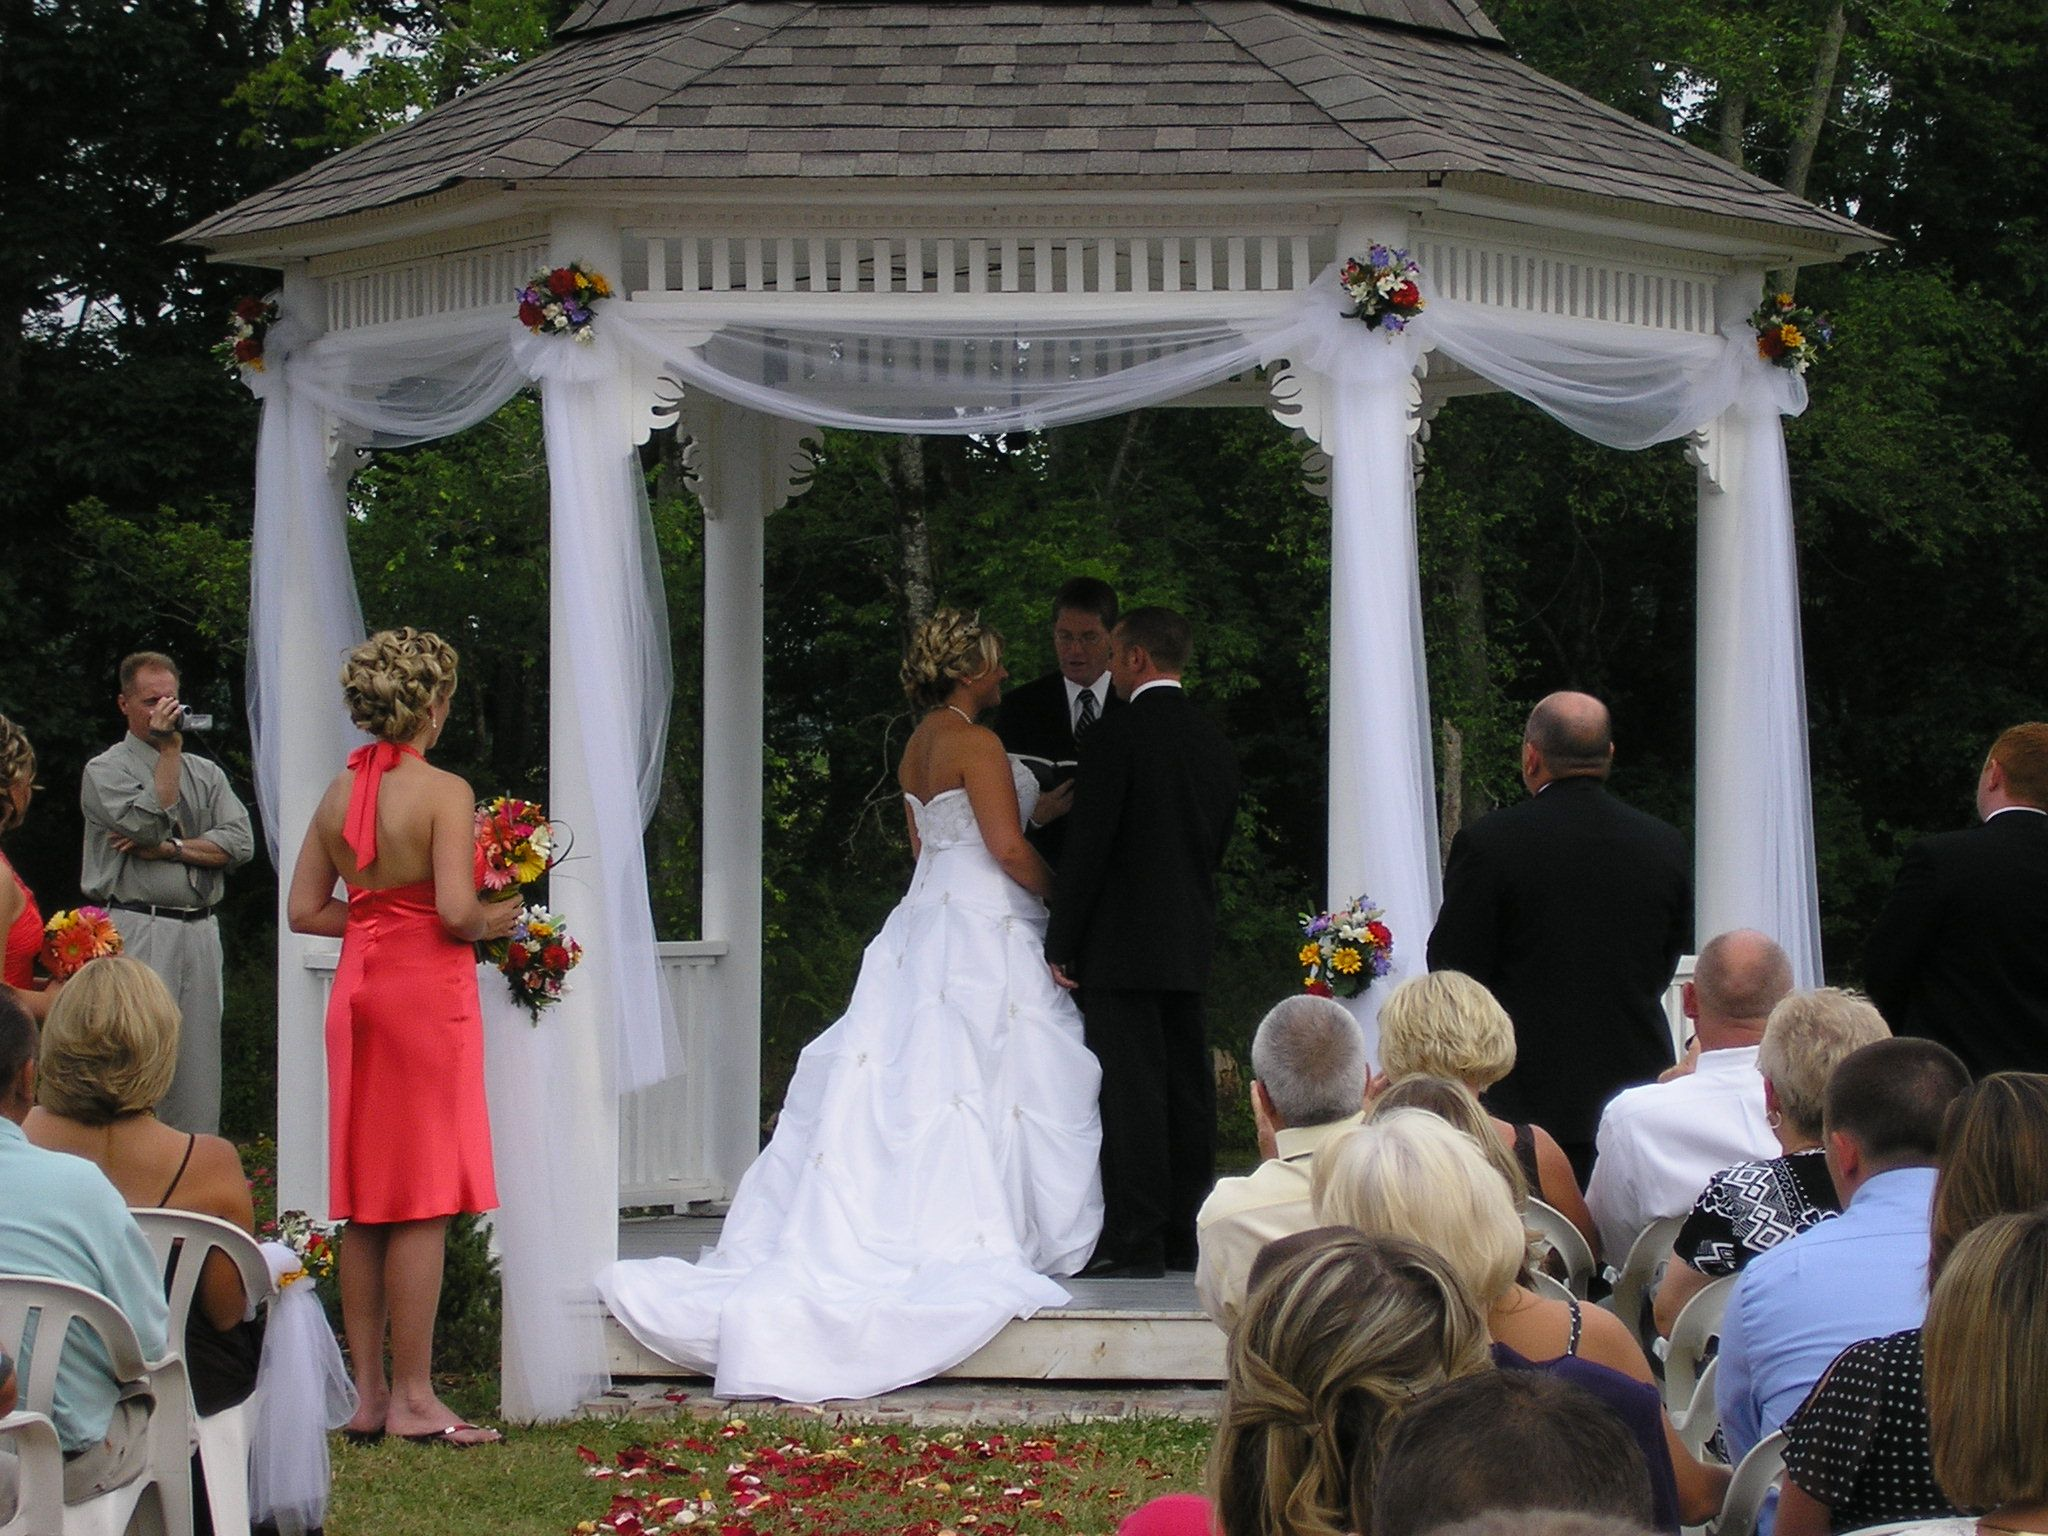 Wedding Gazebo Decorations A Little White Tulle And Flowers No Over Kill Unity Candle Table Needed For Ceremony